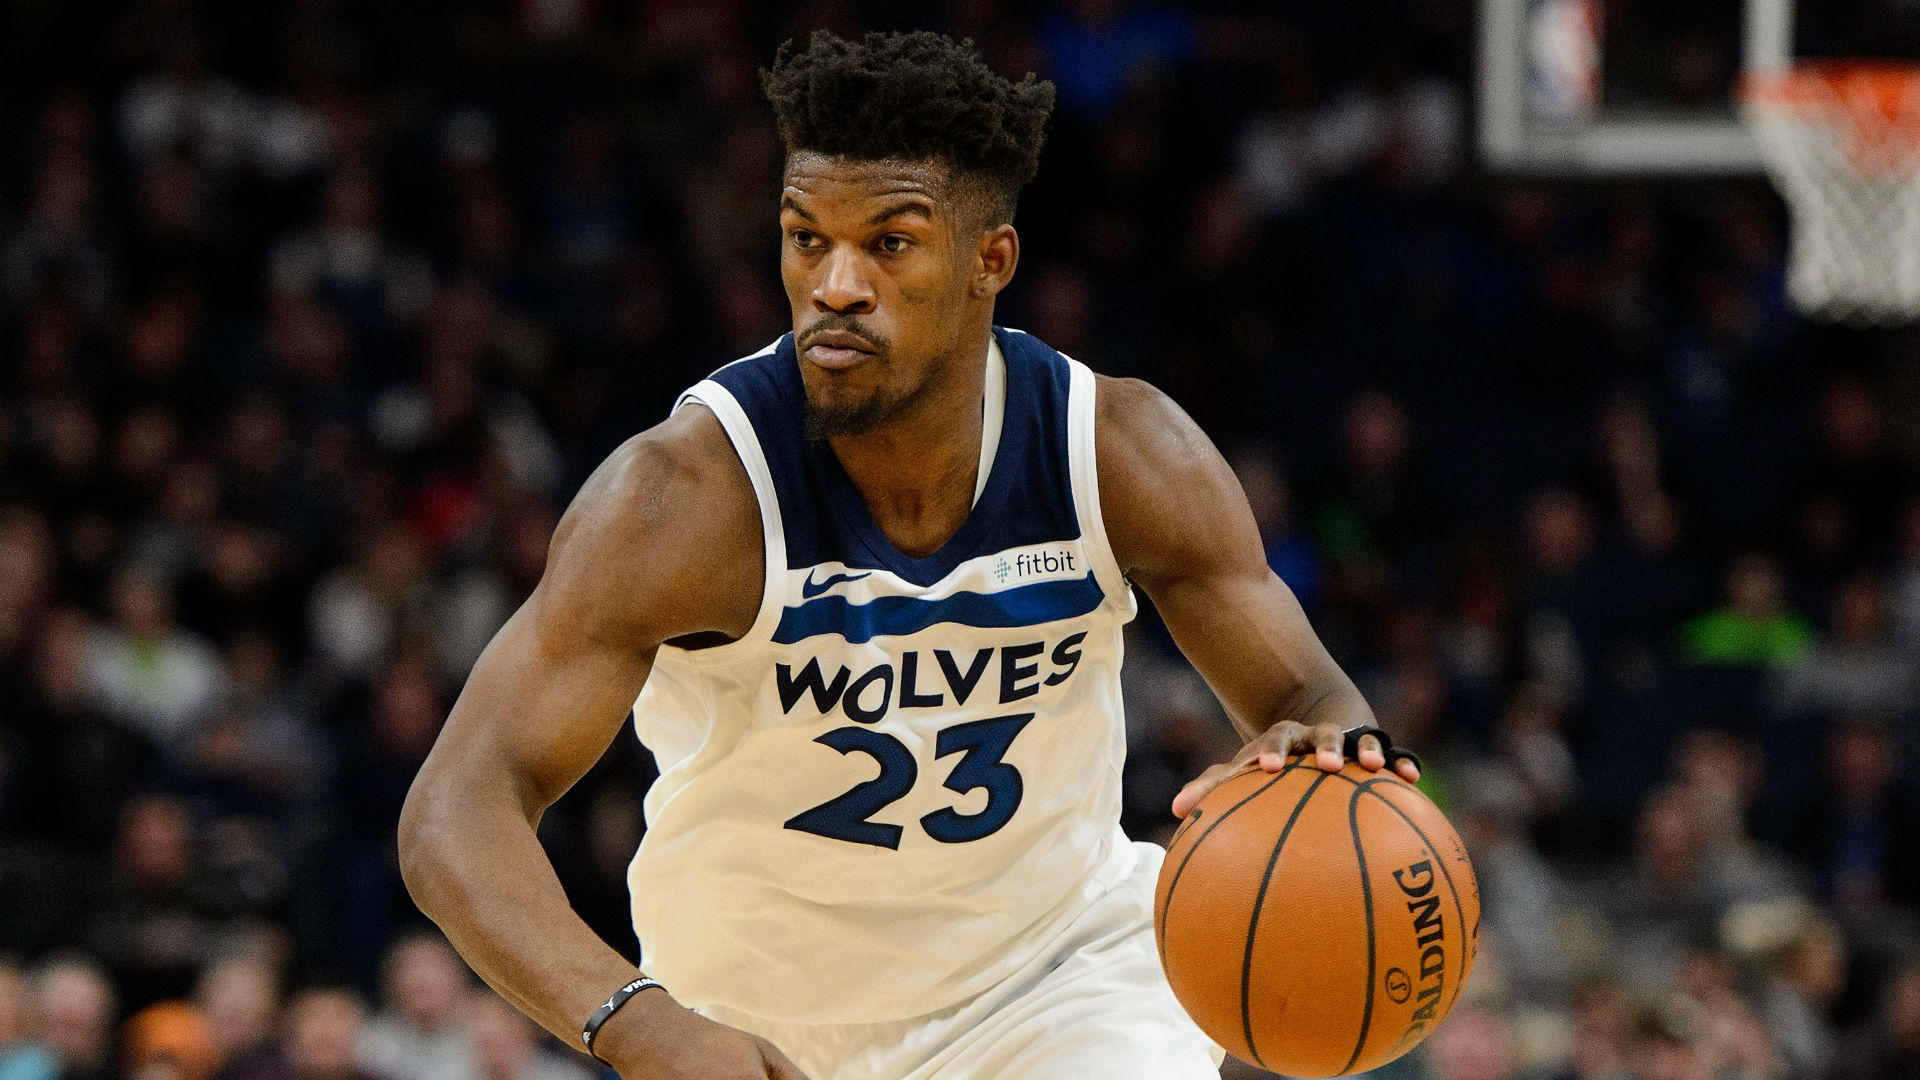 aae6dd8dbbf Butler turns down Timberwolves' 4-year extension offer | Sporting News